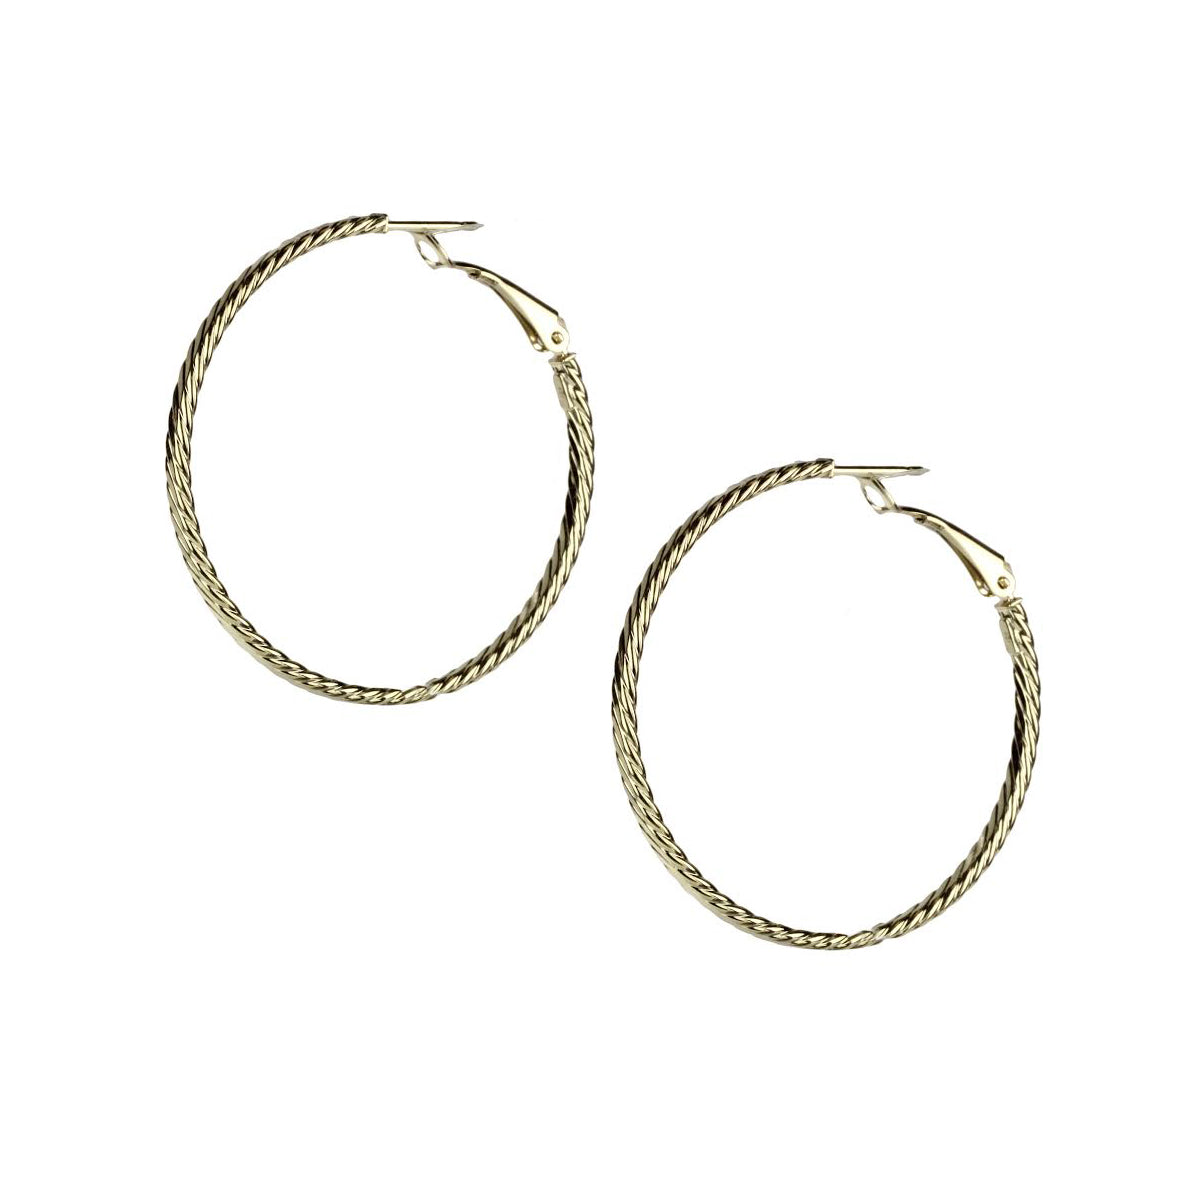 Twisted Hoop Earrings, 1.50 Inches, 14K Yellow Gold